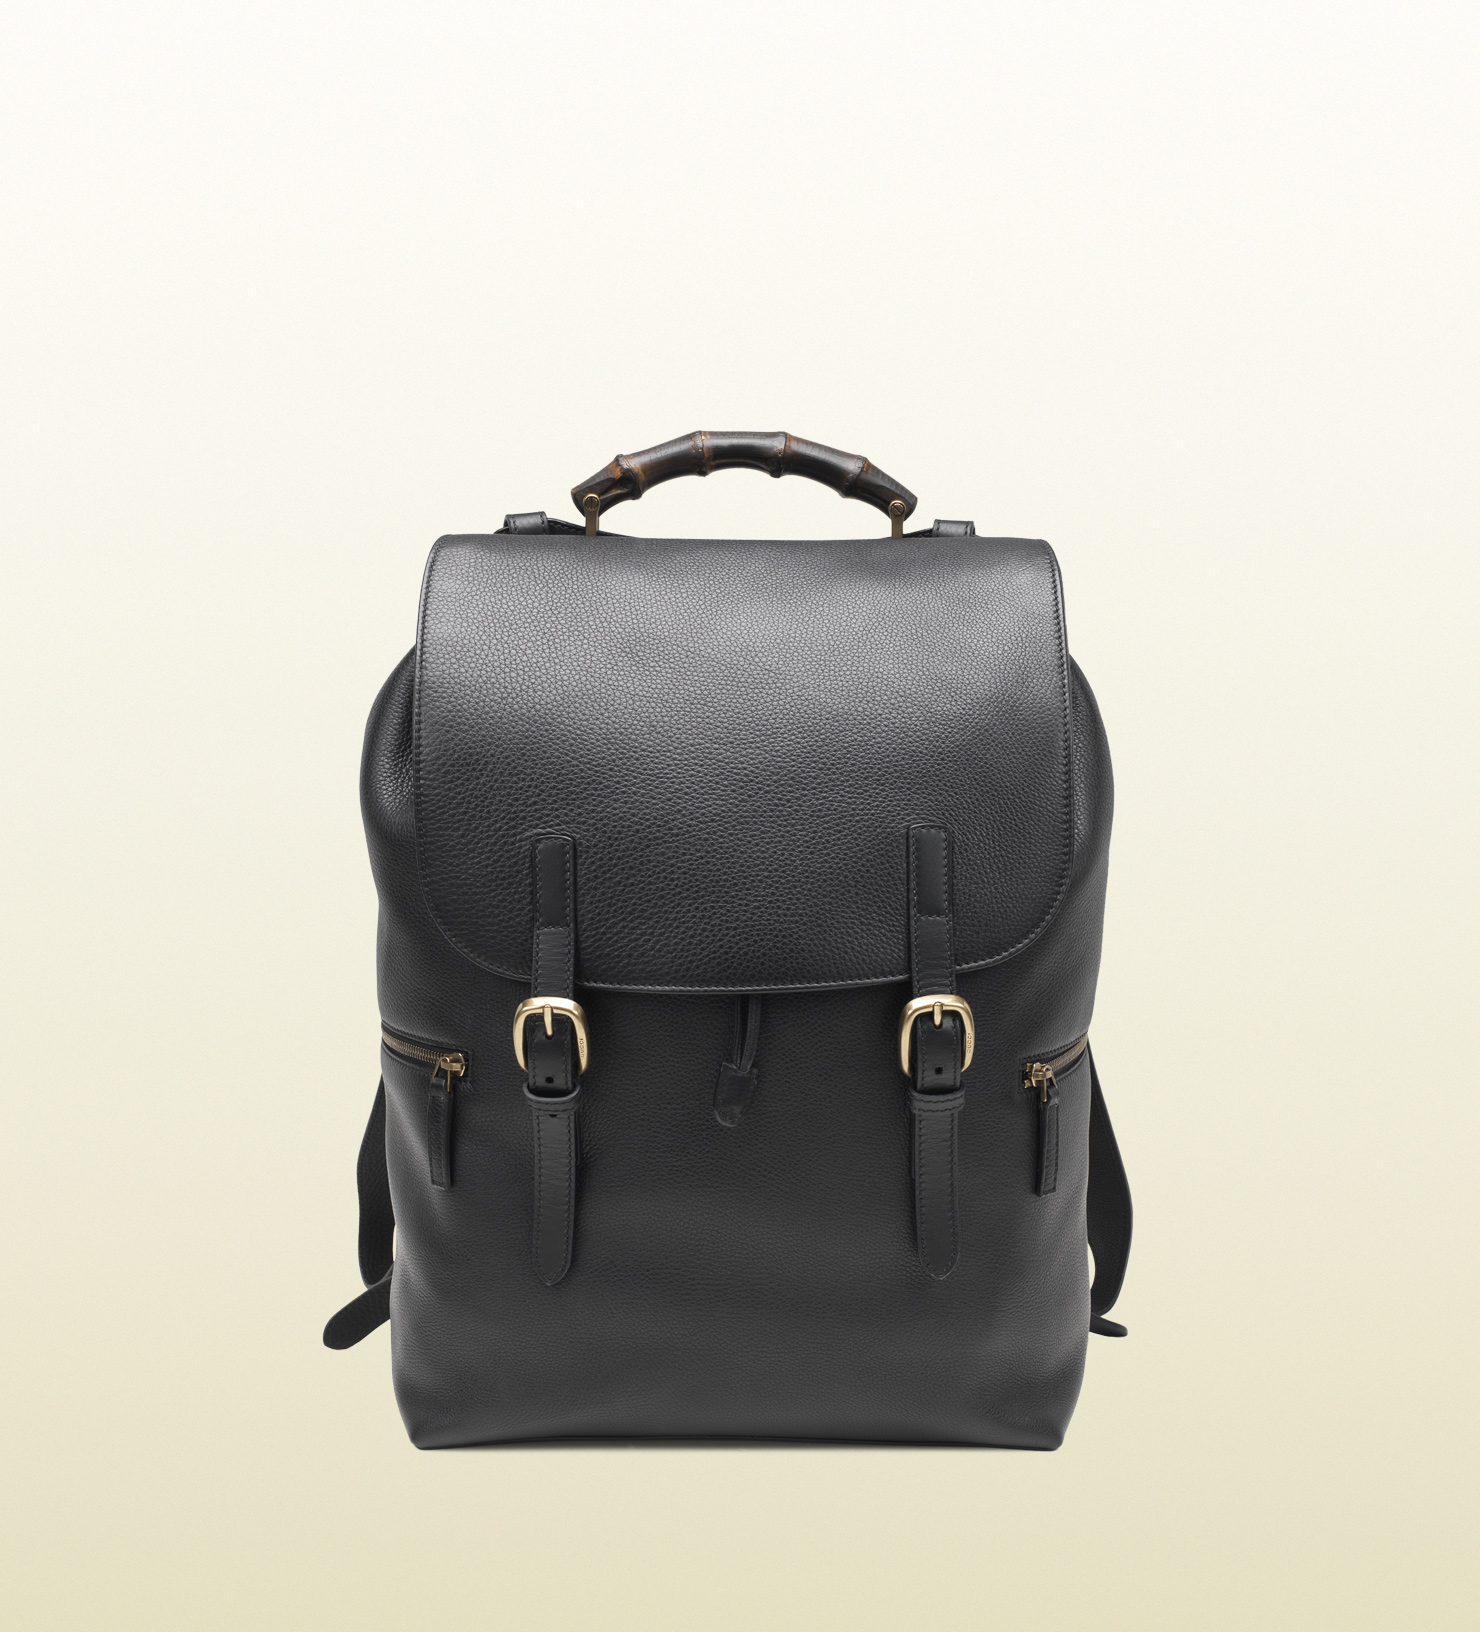 c11cde8bccc Gucci Black Leather Backpack in Black for Men - Lyst